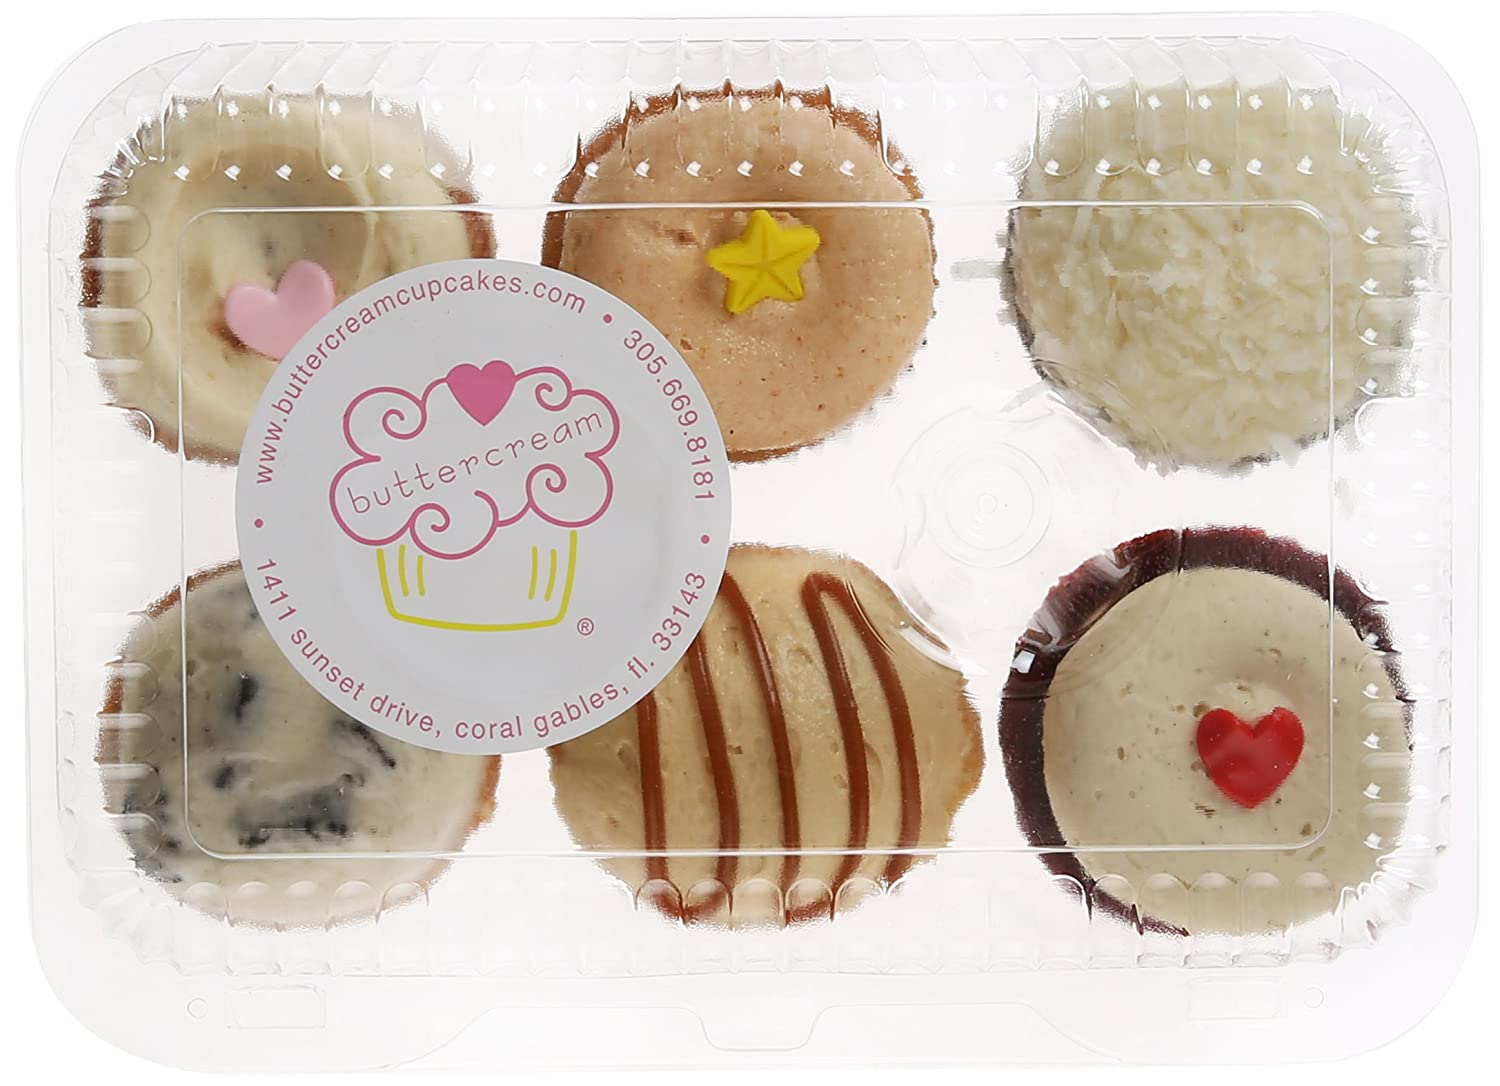 Buttercream Cupcakes, Classic Favorites Miami Style, Standard/6 cupcakes: Amazon.com: Grocery & Gourmet Food